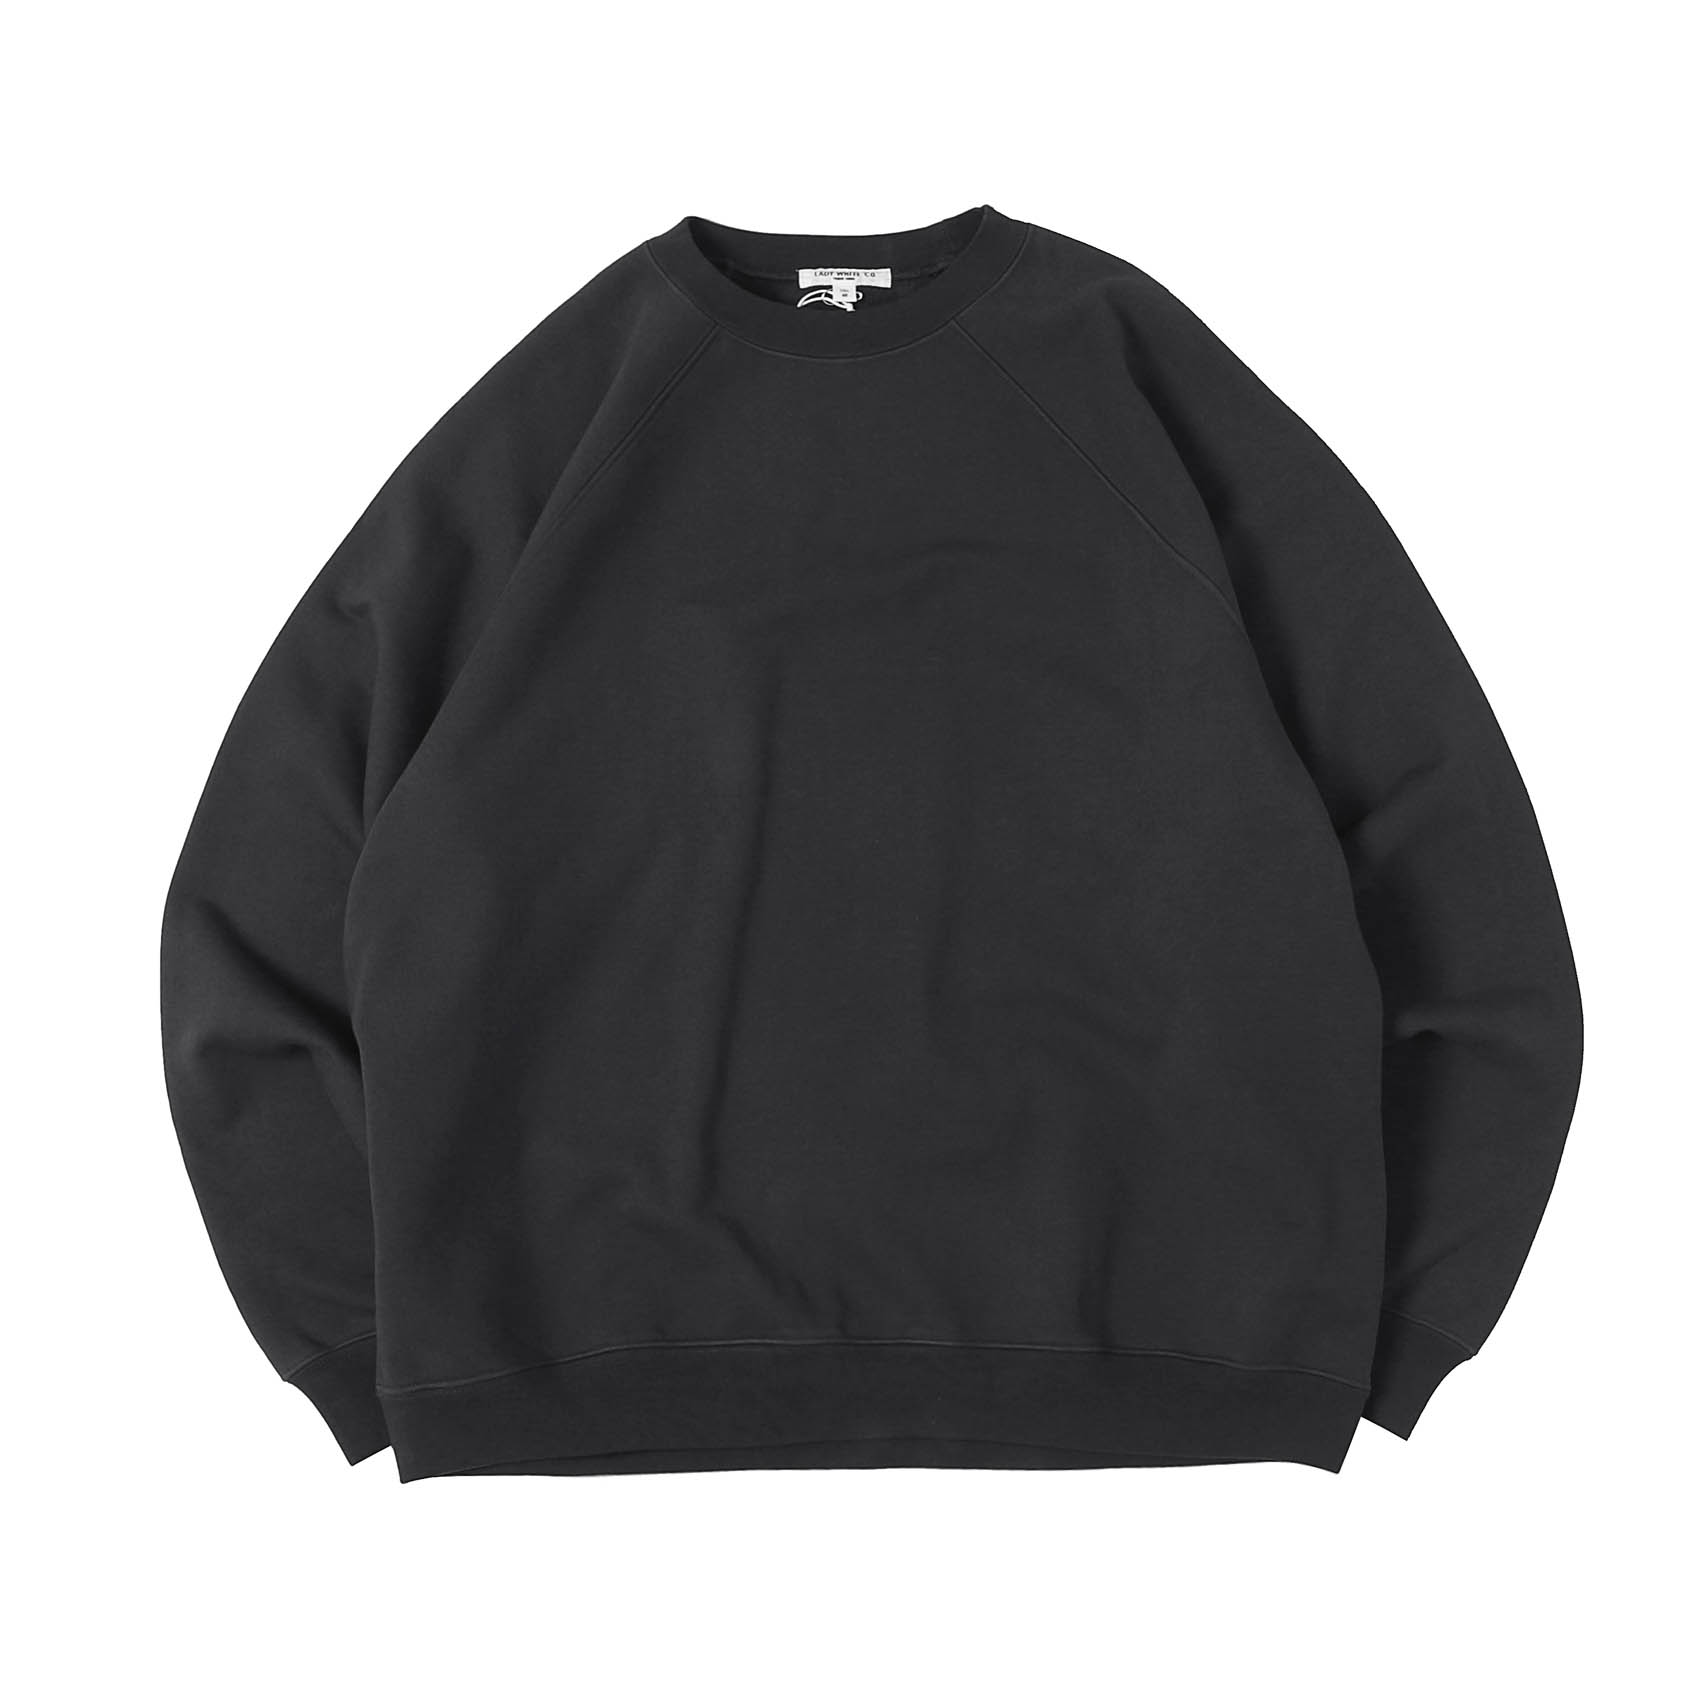 HEAVY WEIGHTED RAGLAN SWEATSHIRT - TIRE BLACK